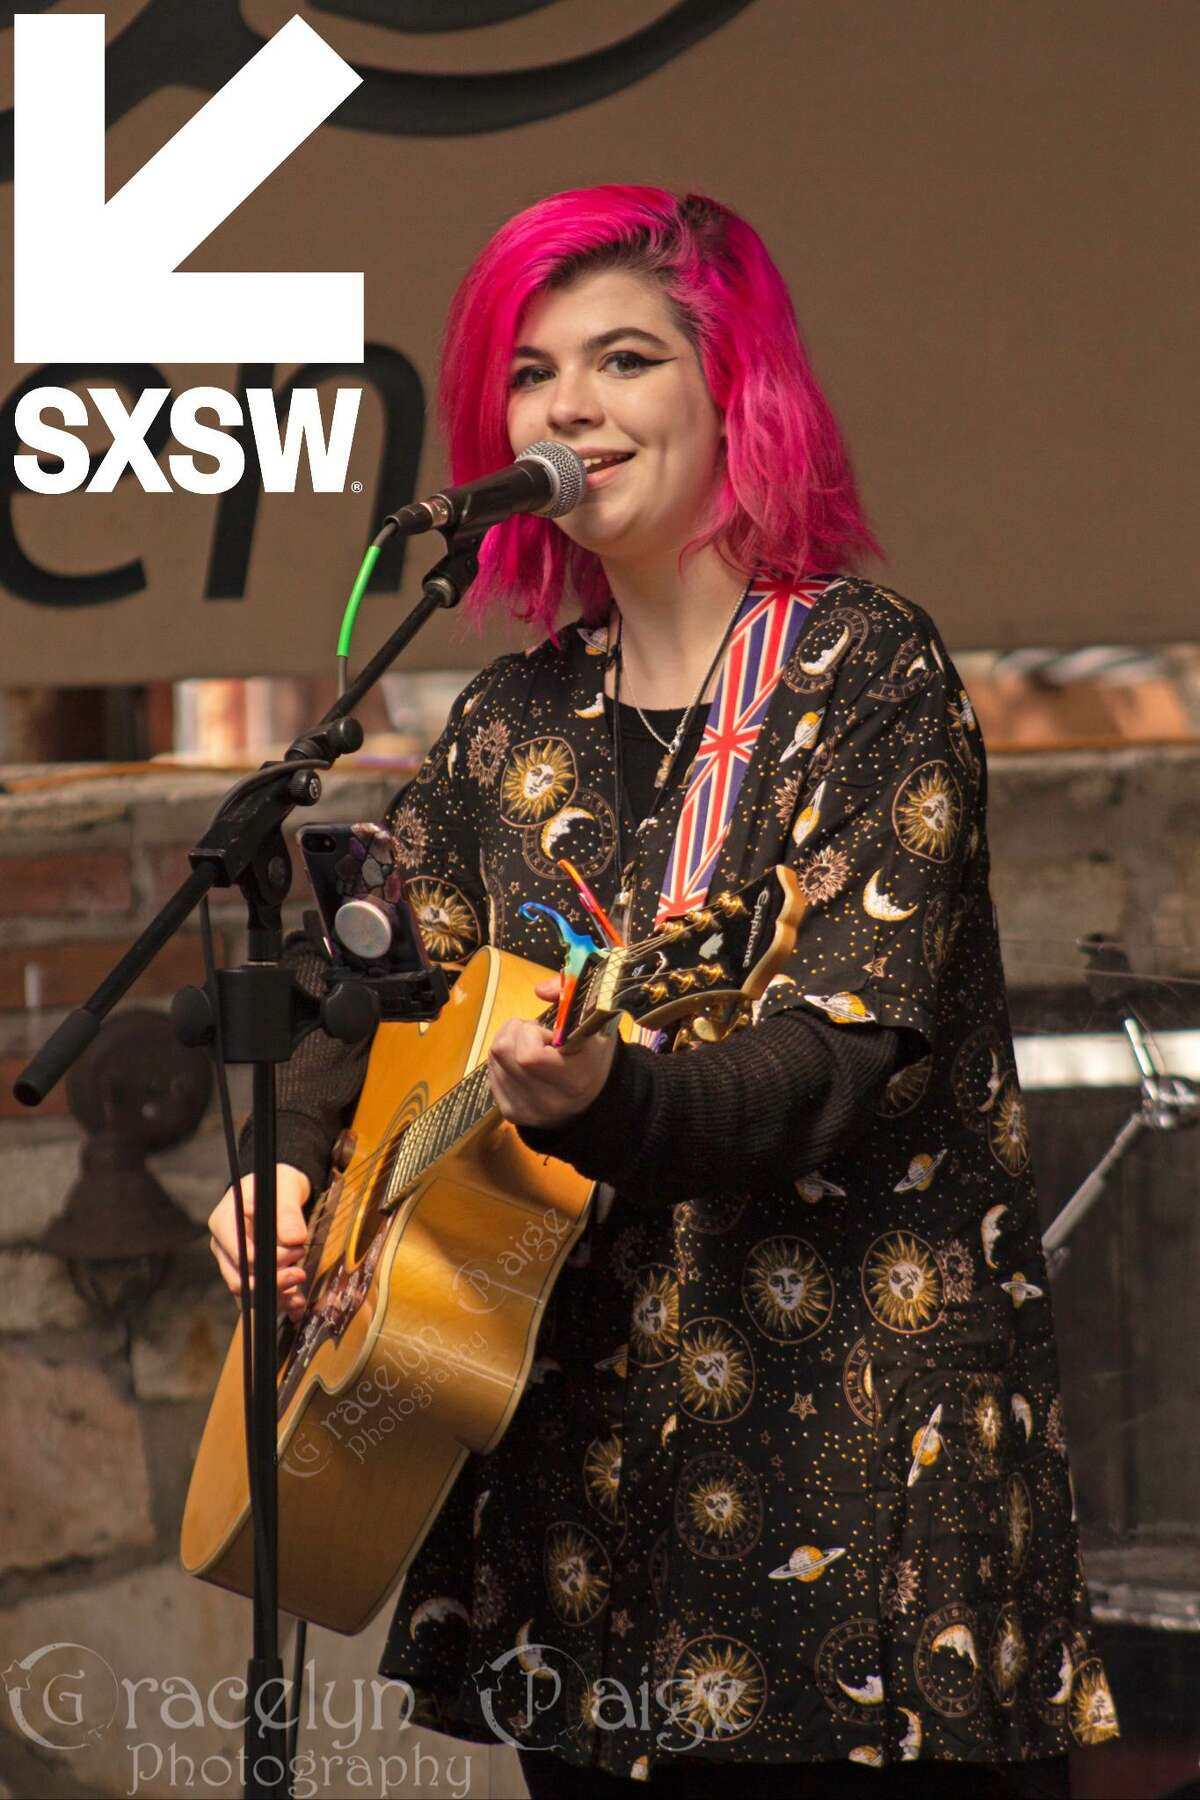 Emily Cole performing at an event during SXSW in Austin.